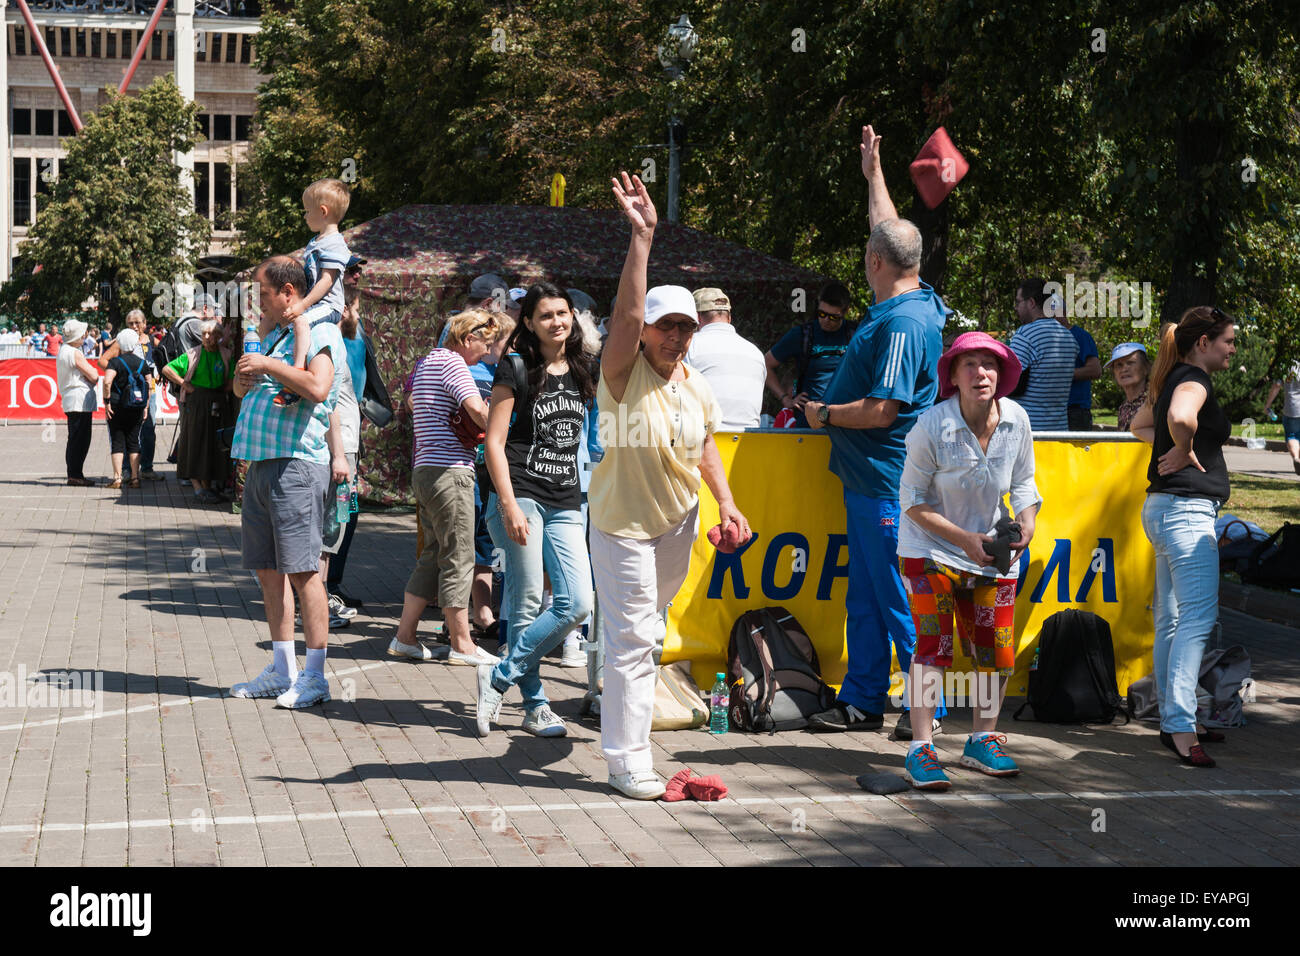 Moscow, Russia. 25th July, 2015. Moscow City Games 2015 sports festival took place at the Olympic Sport Complex - Stock Image